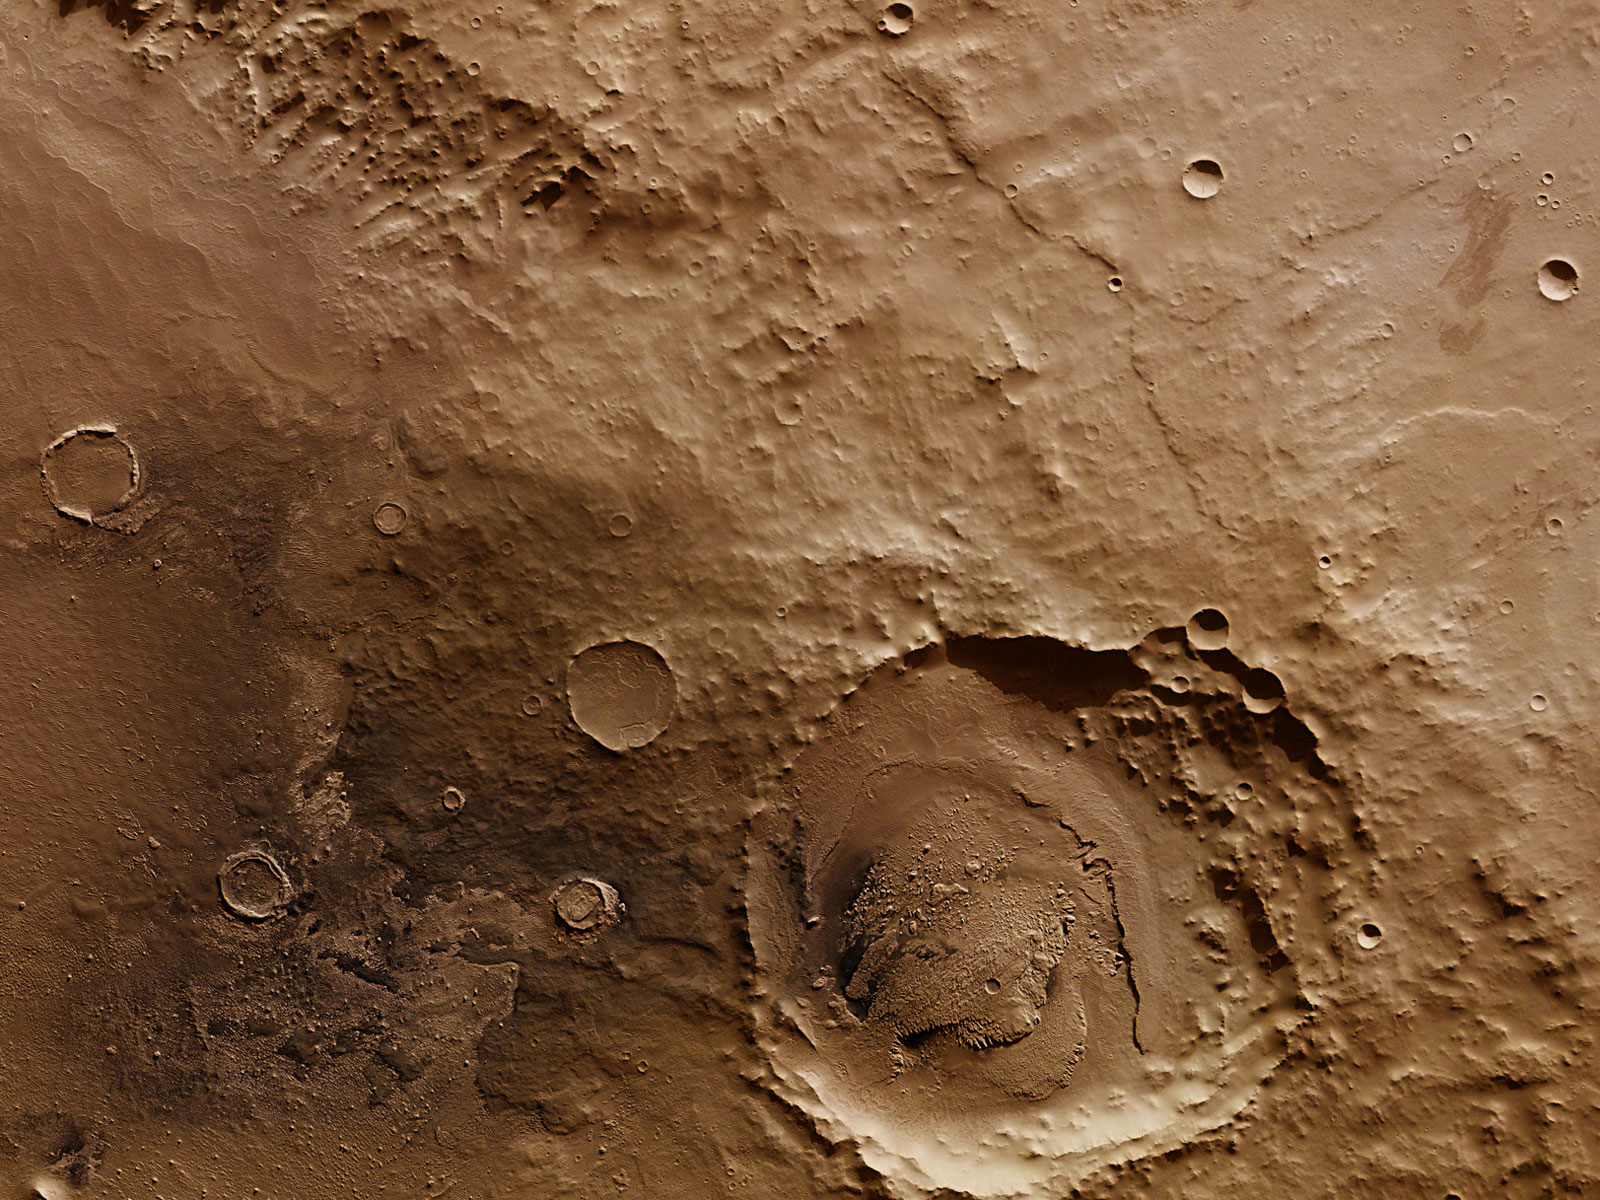 On the Edge at Schiaparelli Crater | Space Wallpaper